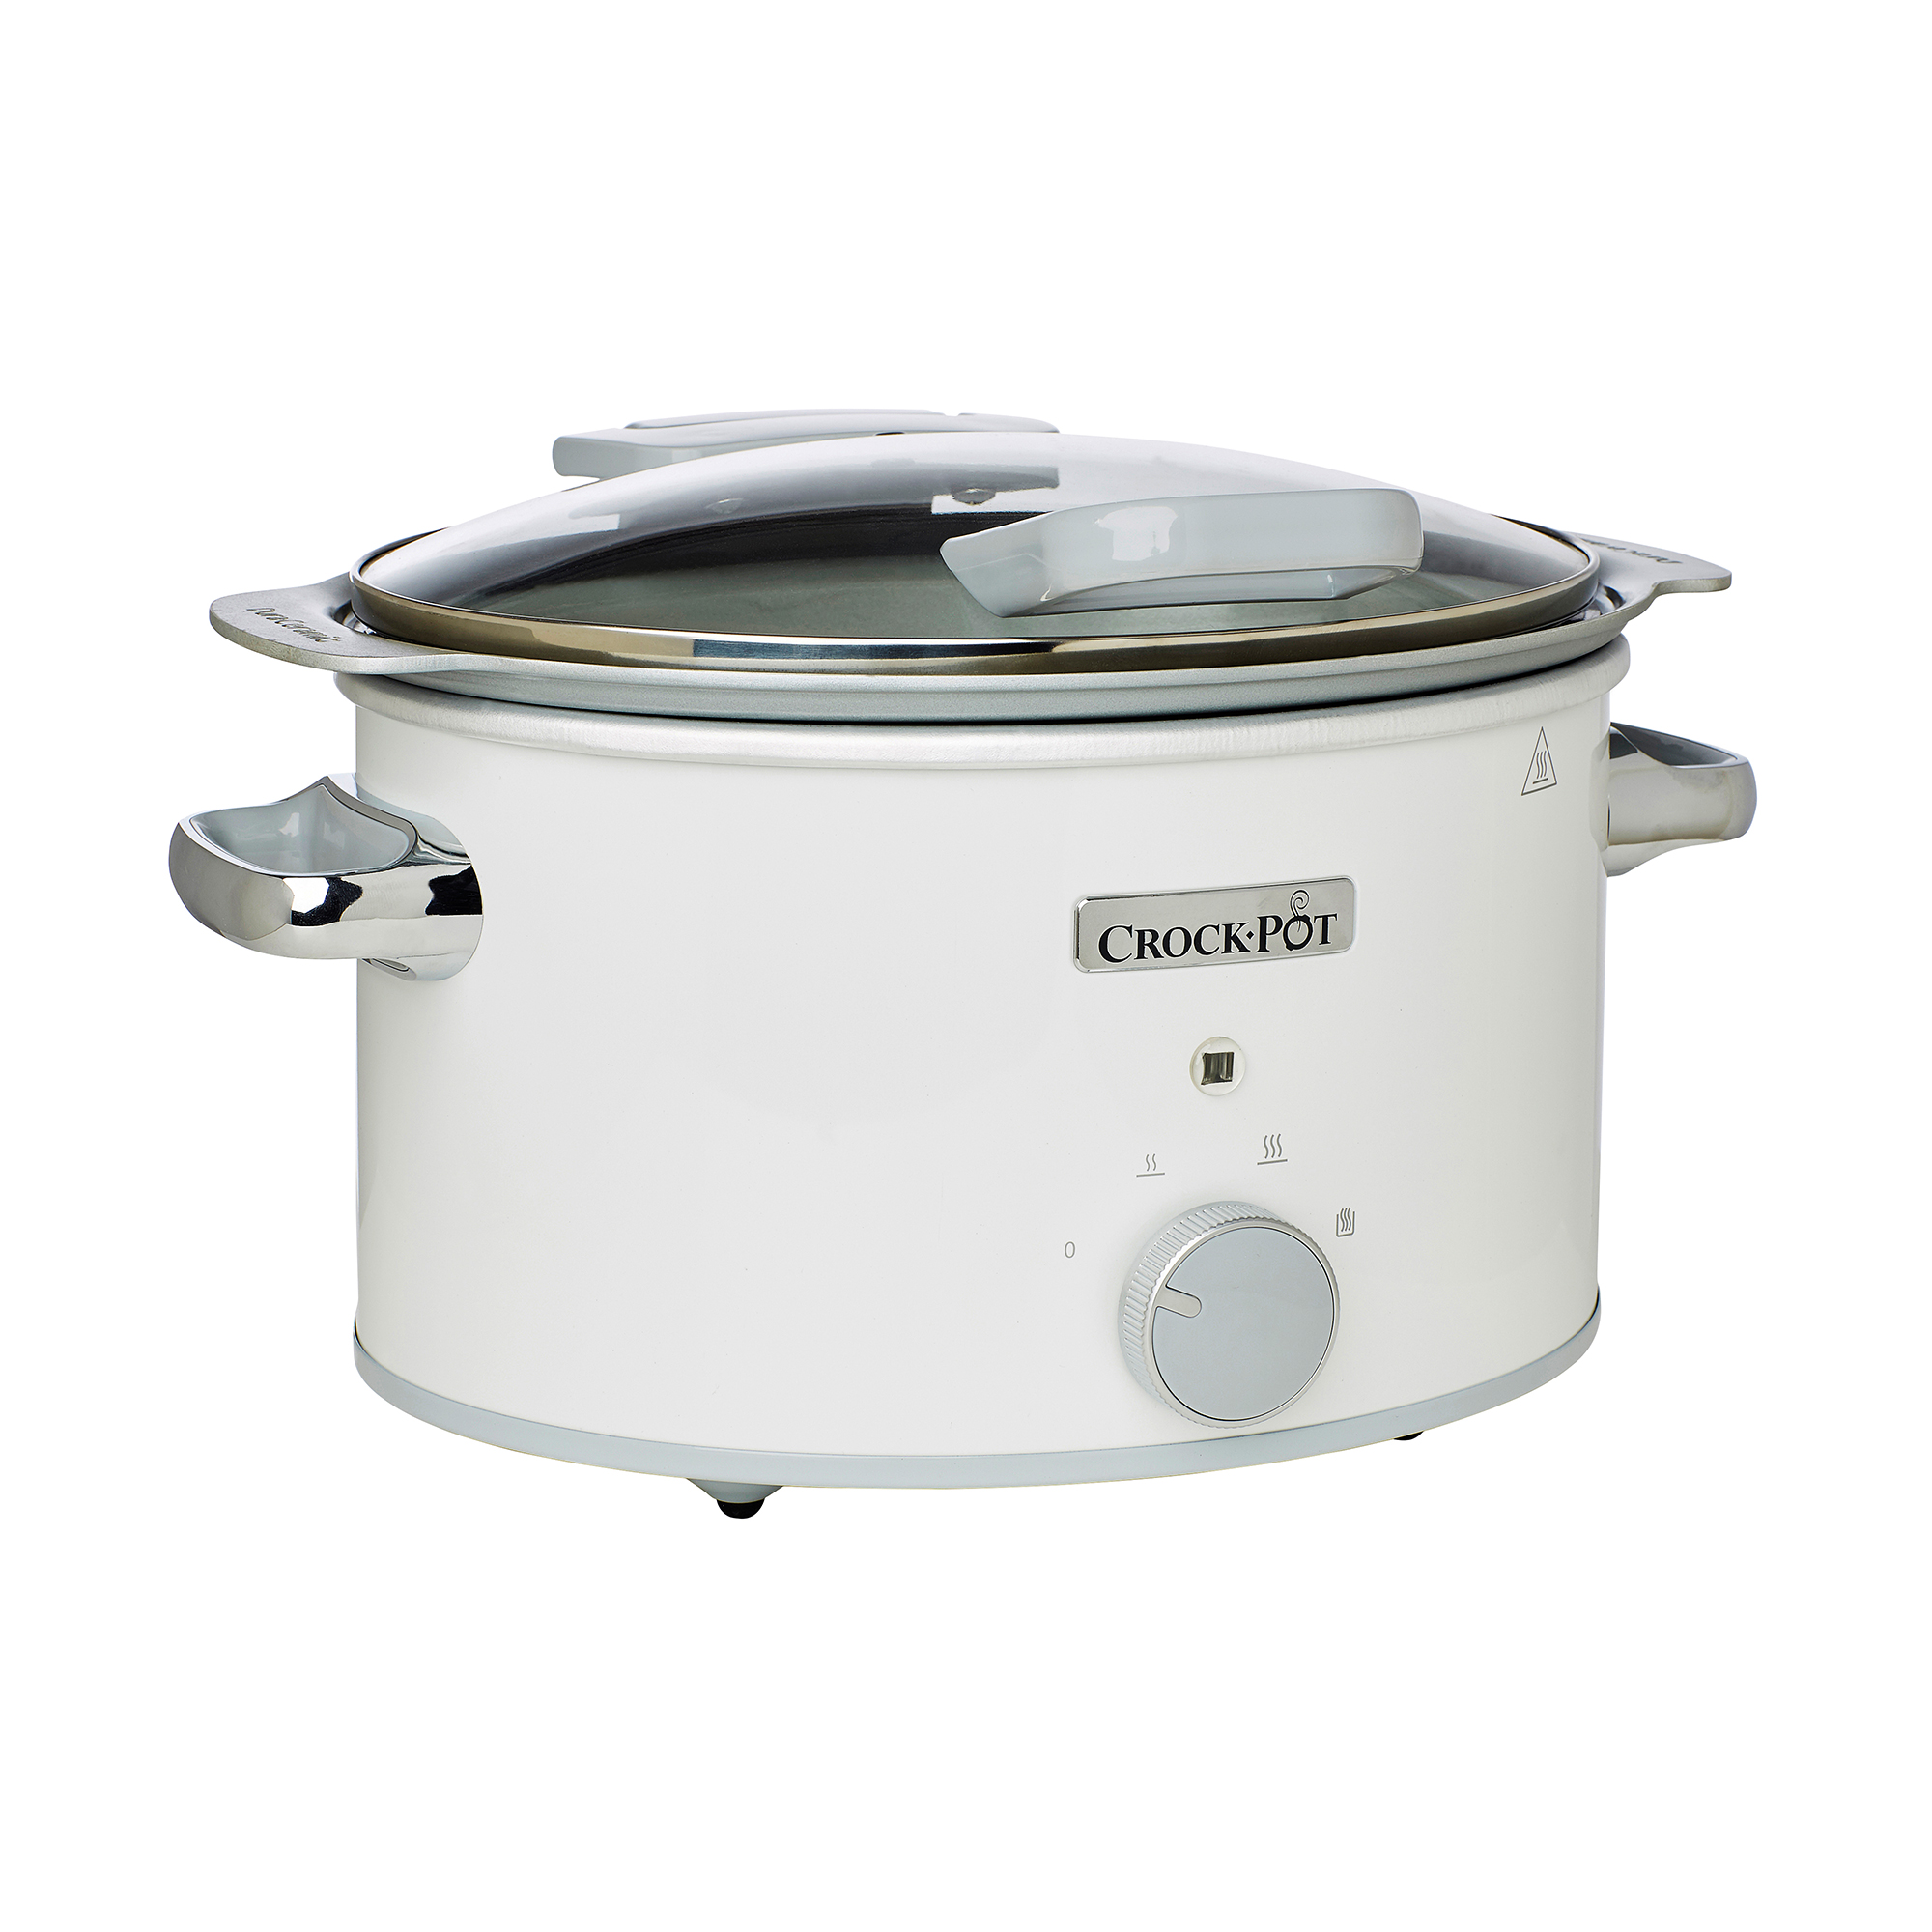 Crock-Pot Slowcooker 4,5 l – One Pot Cooking, manuell